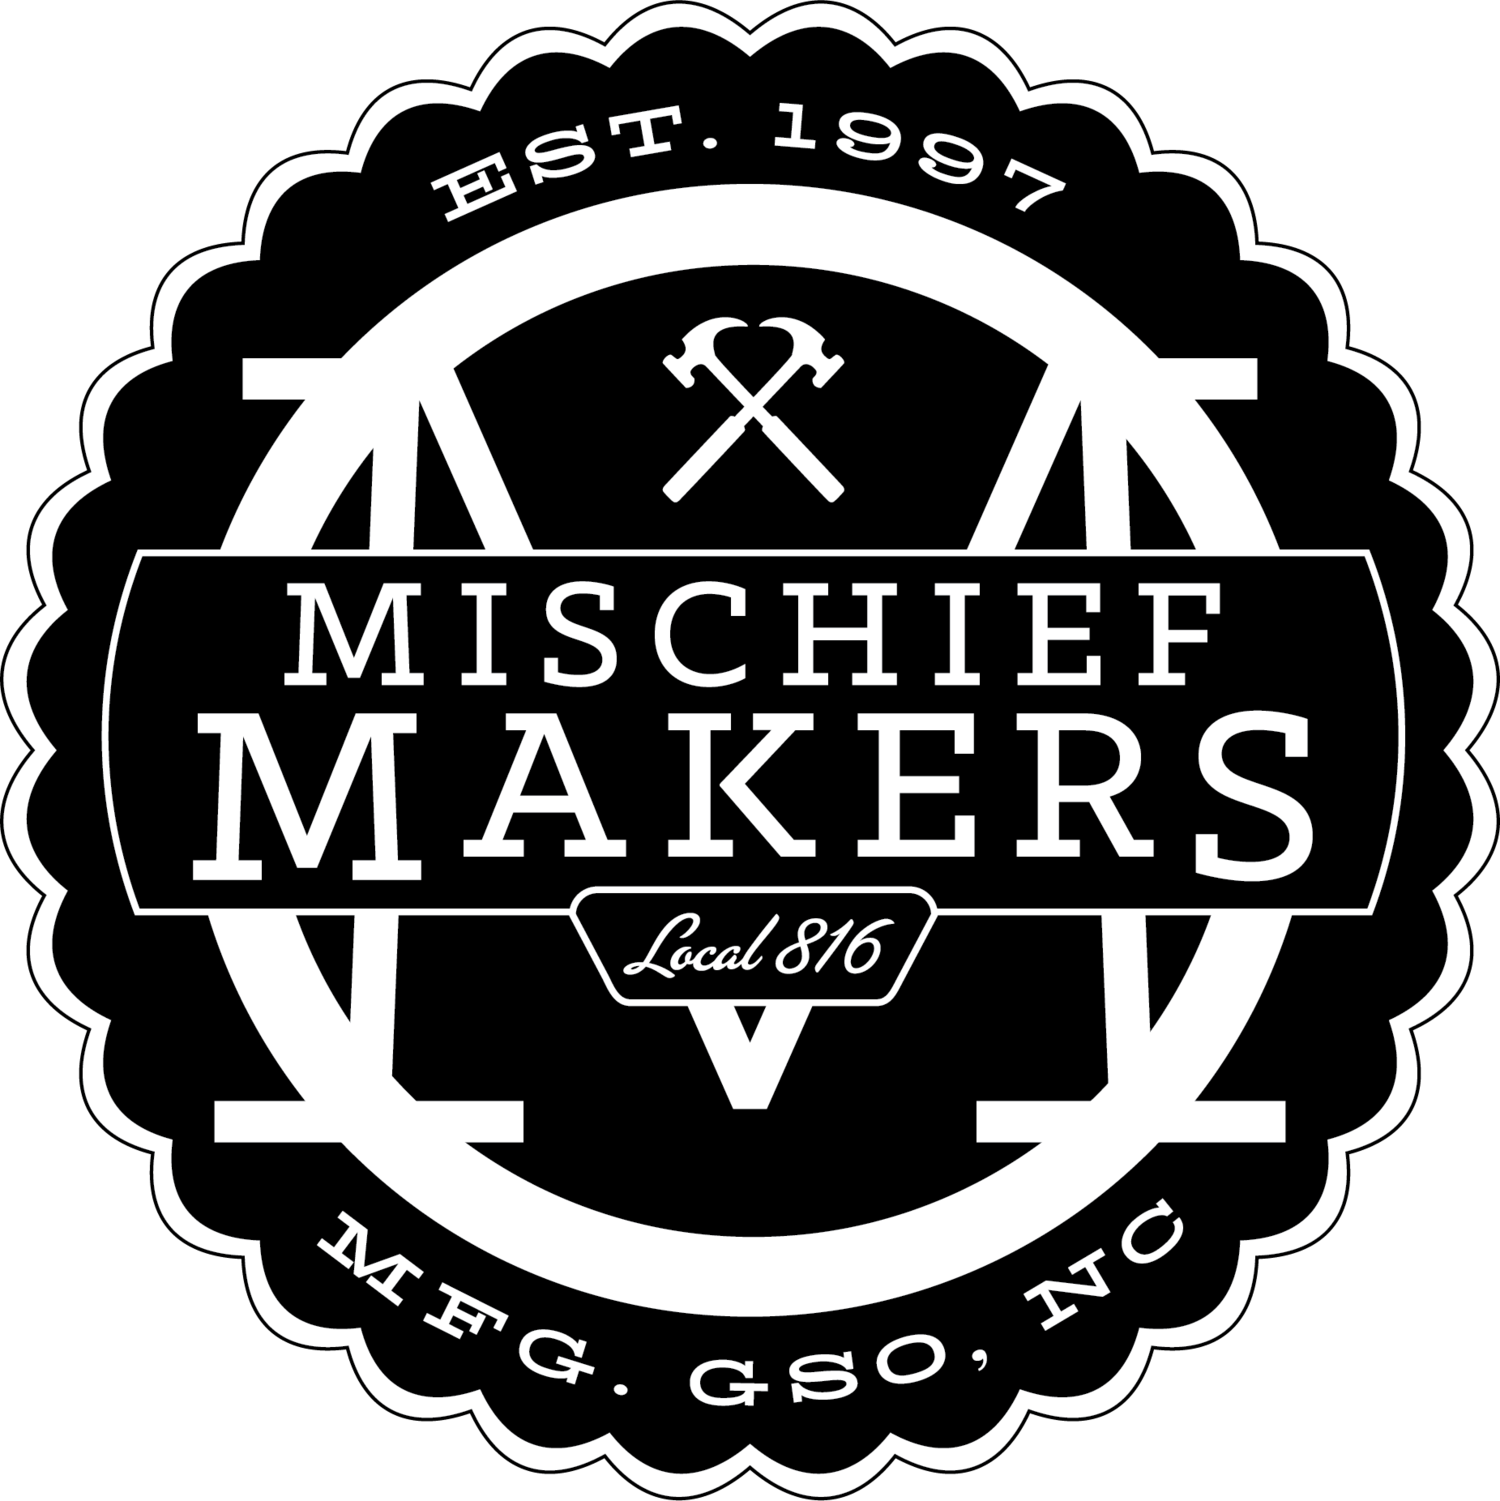 Mischief Makers Local 816